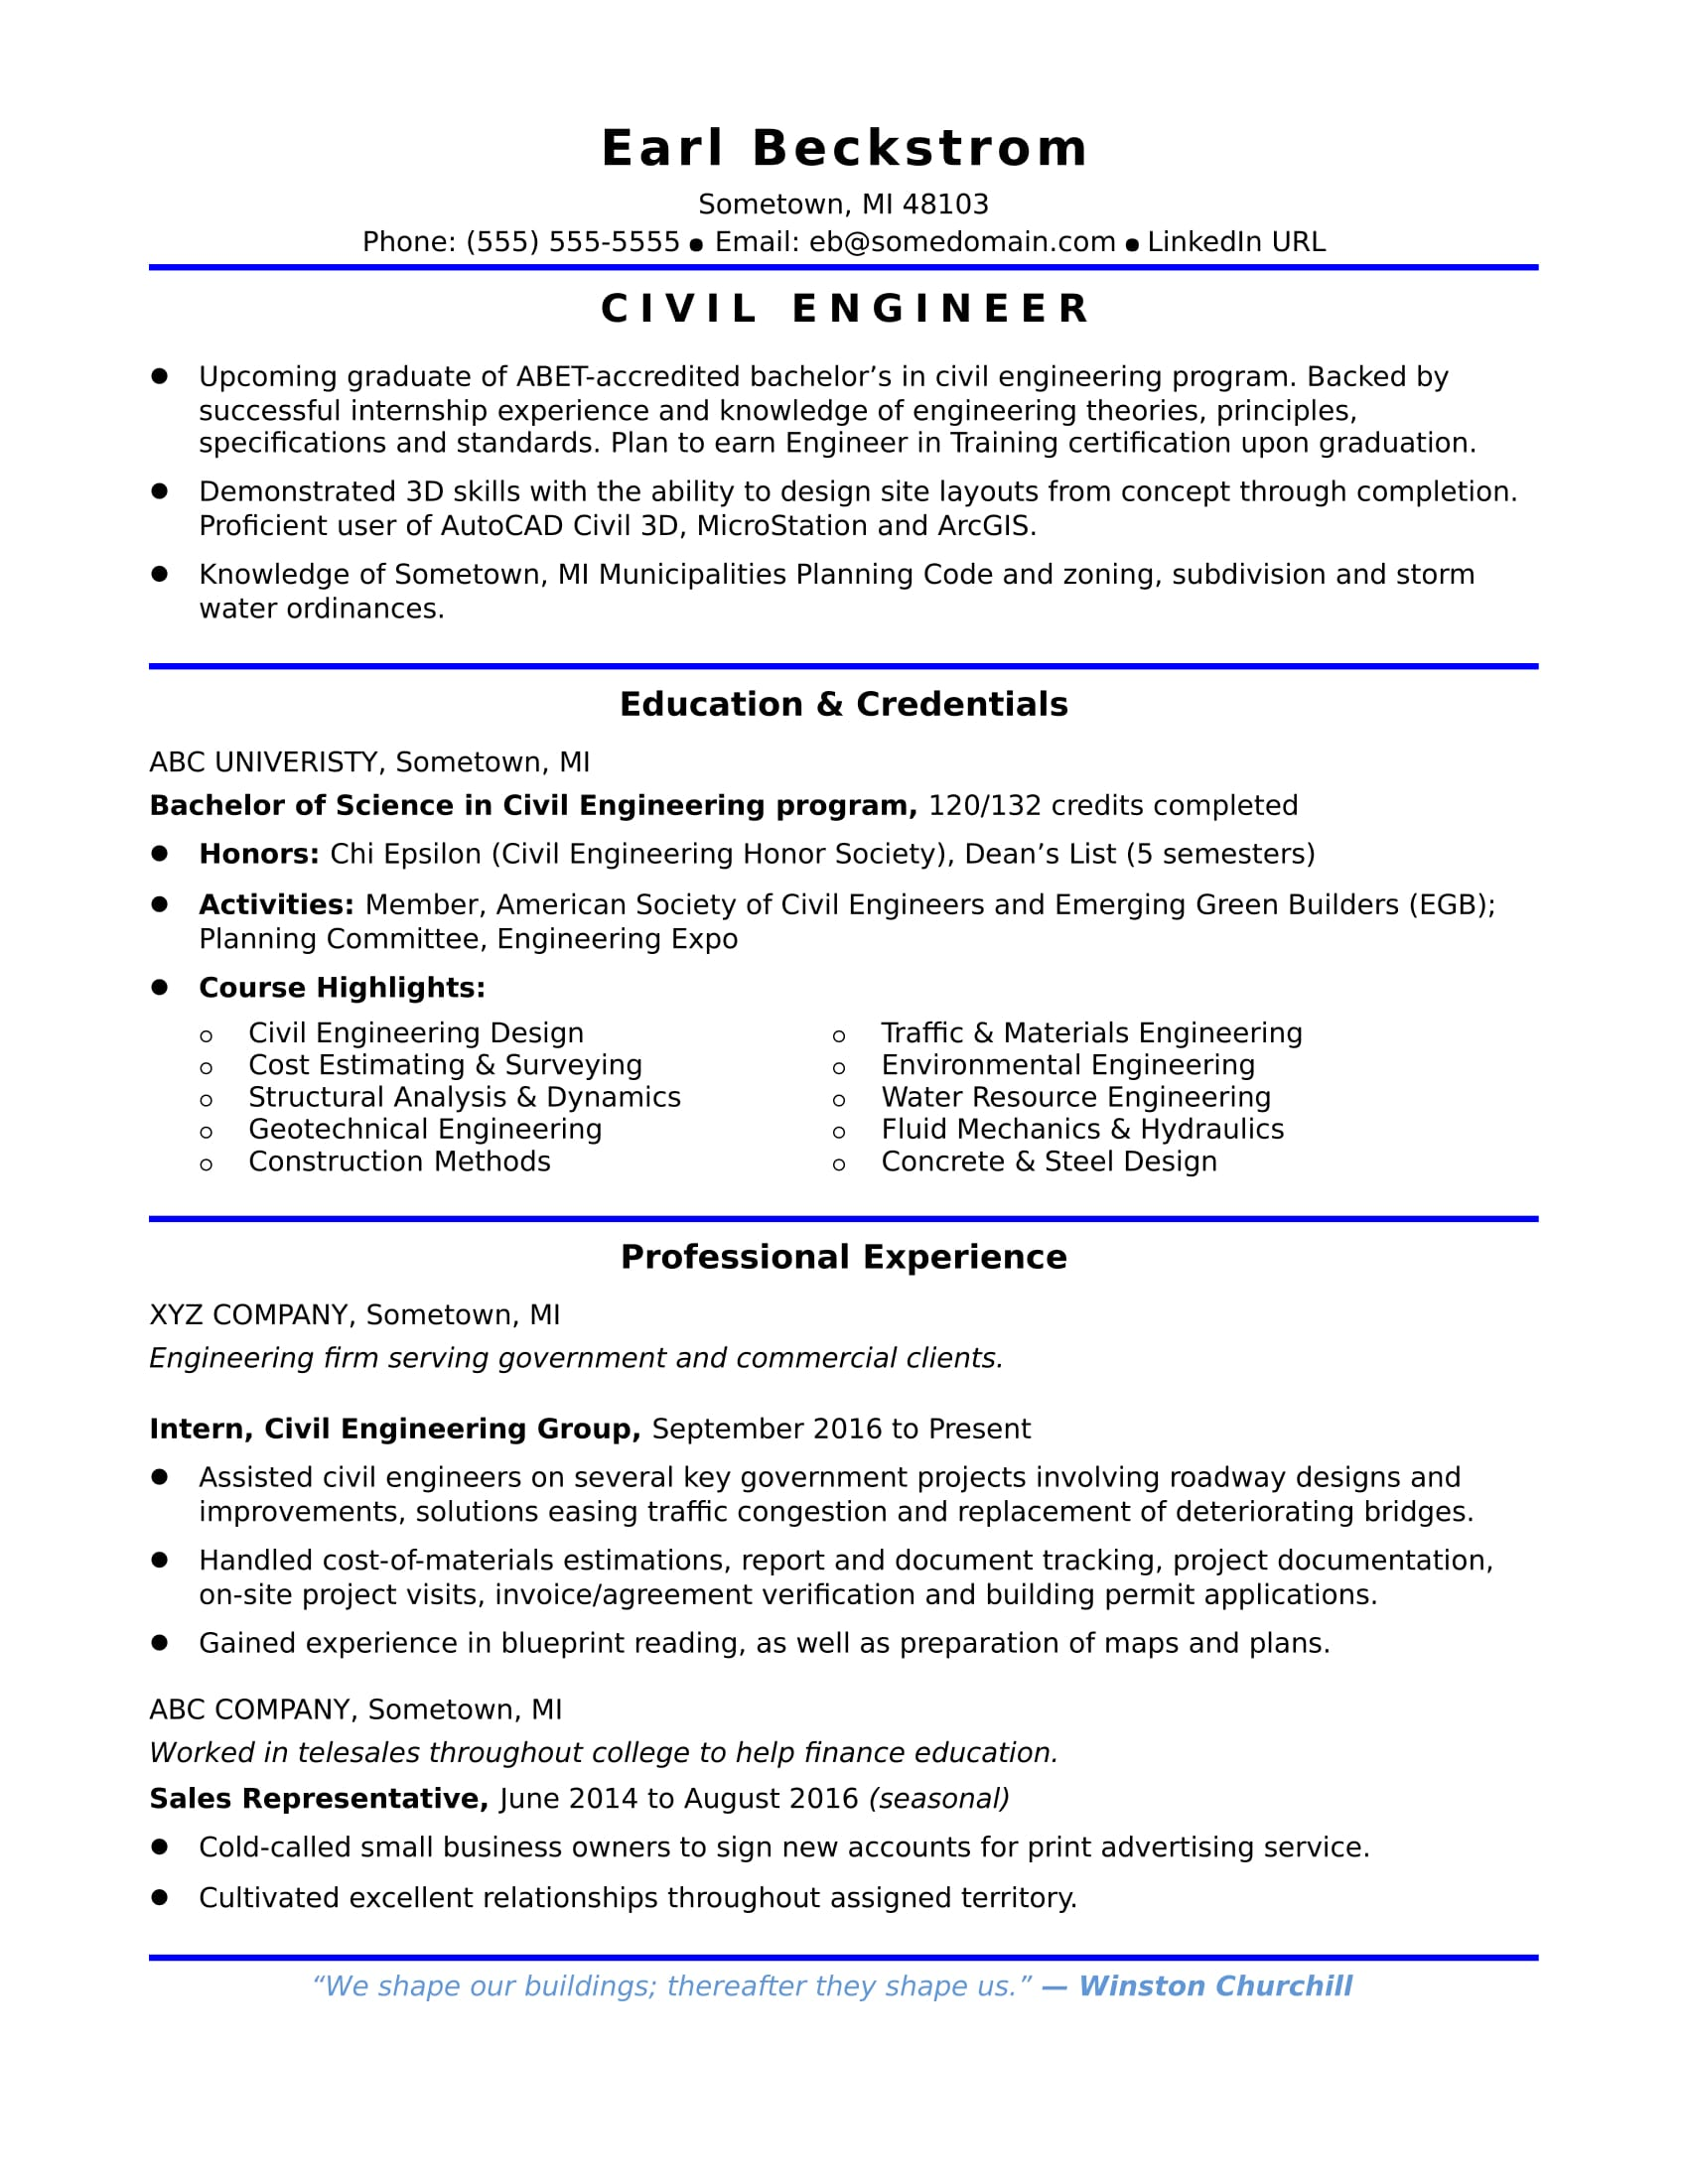 Sample Resume For An Entry Level Civil Engineer  Resume Example Education